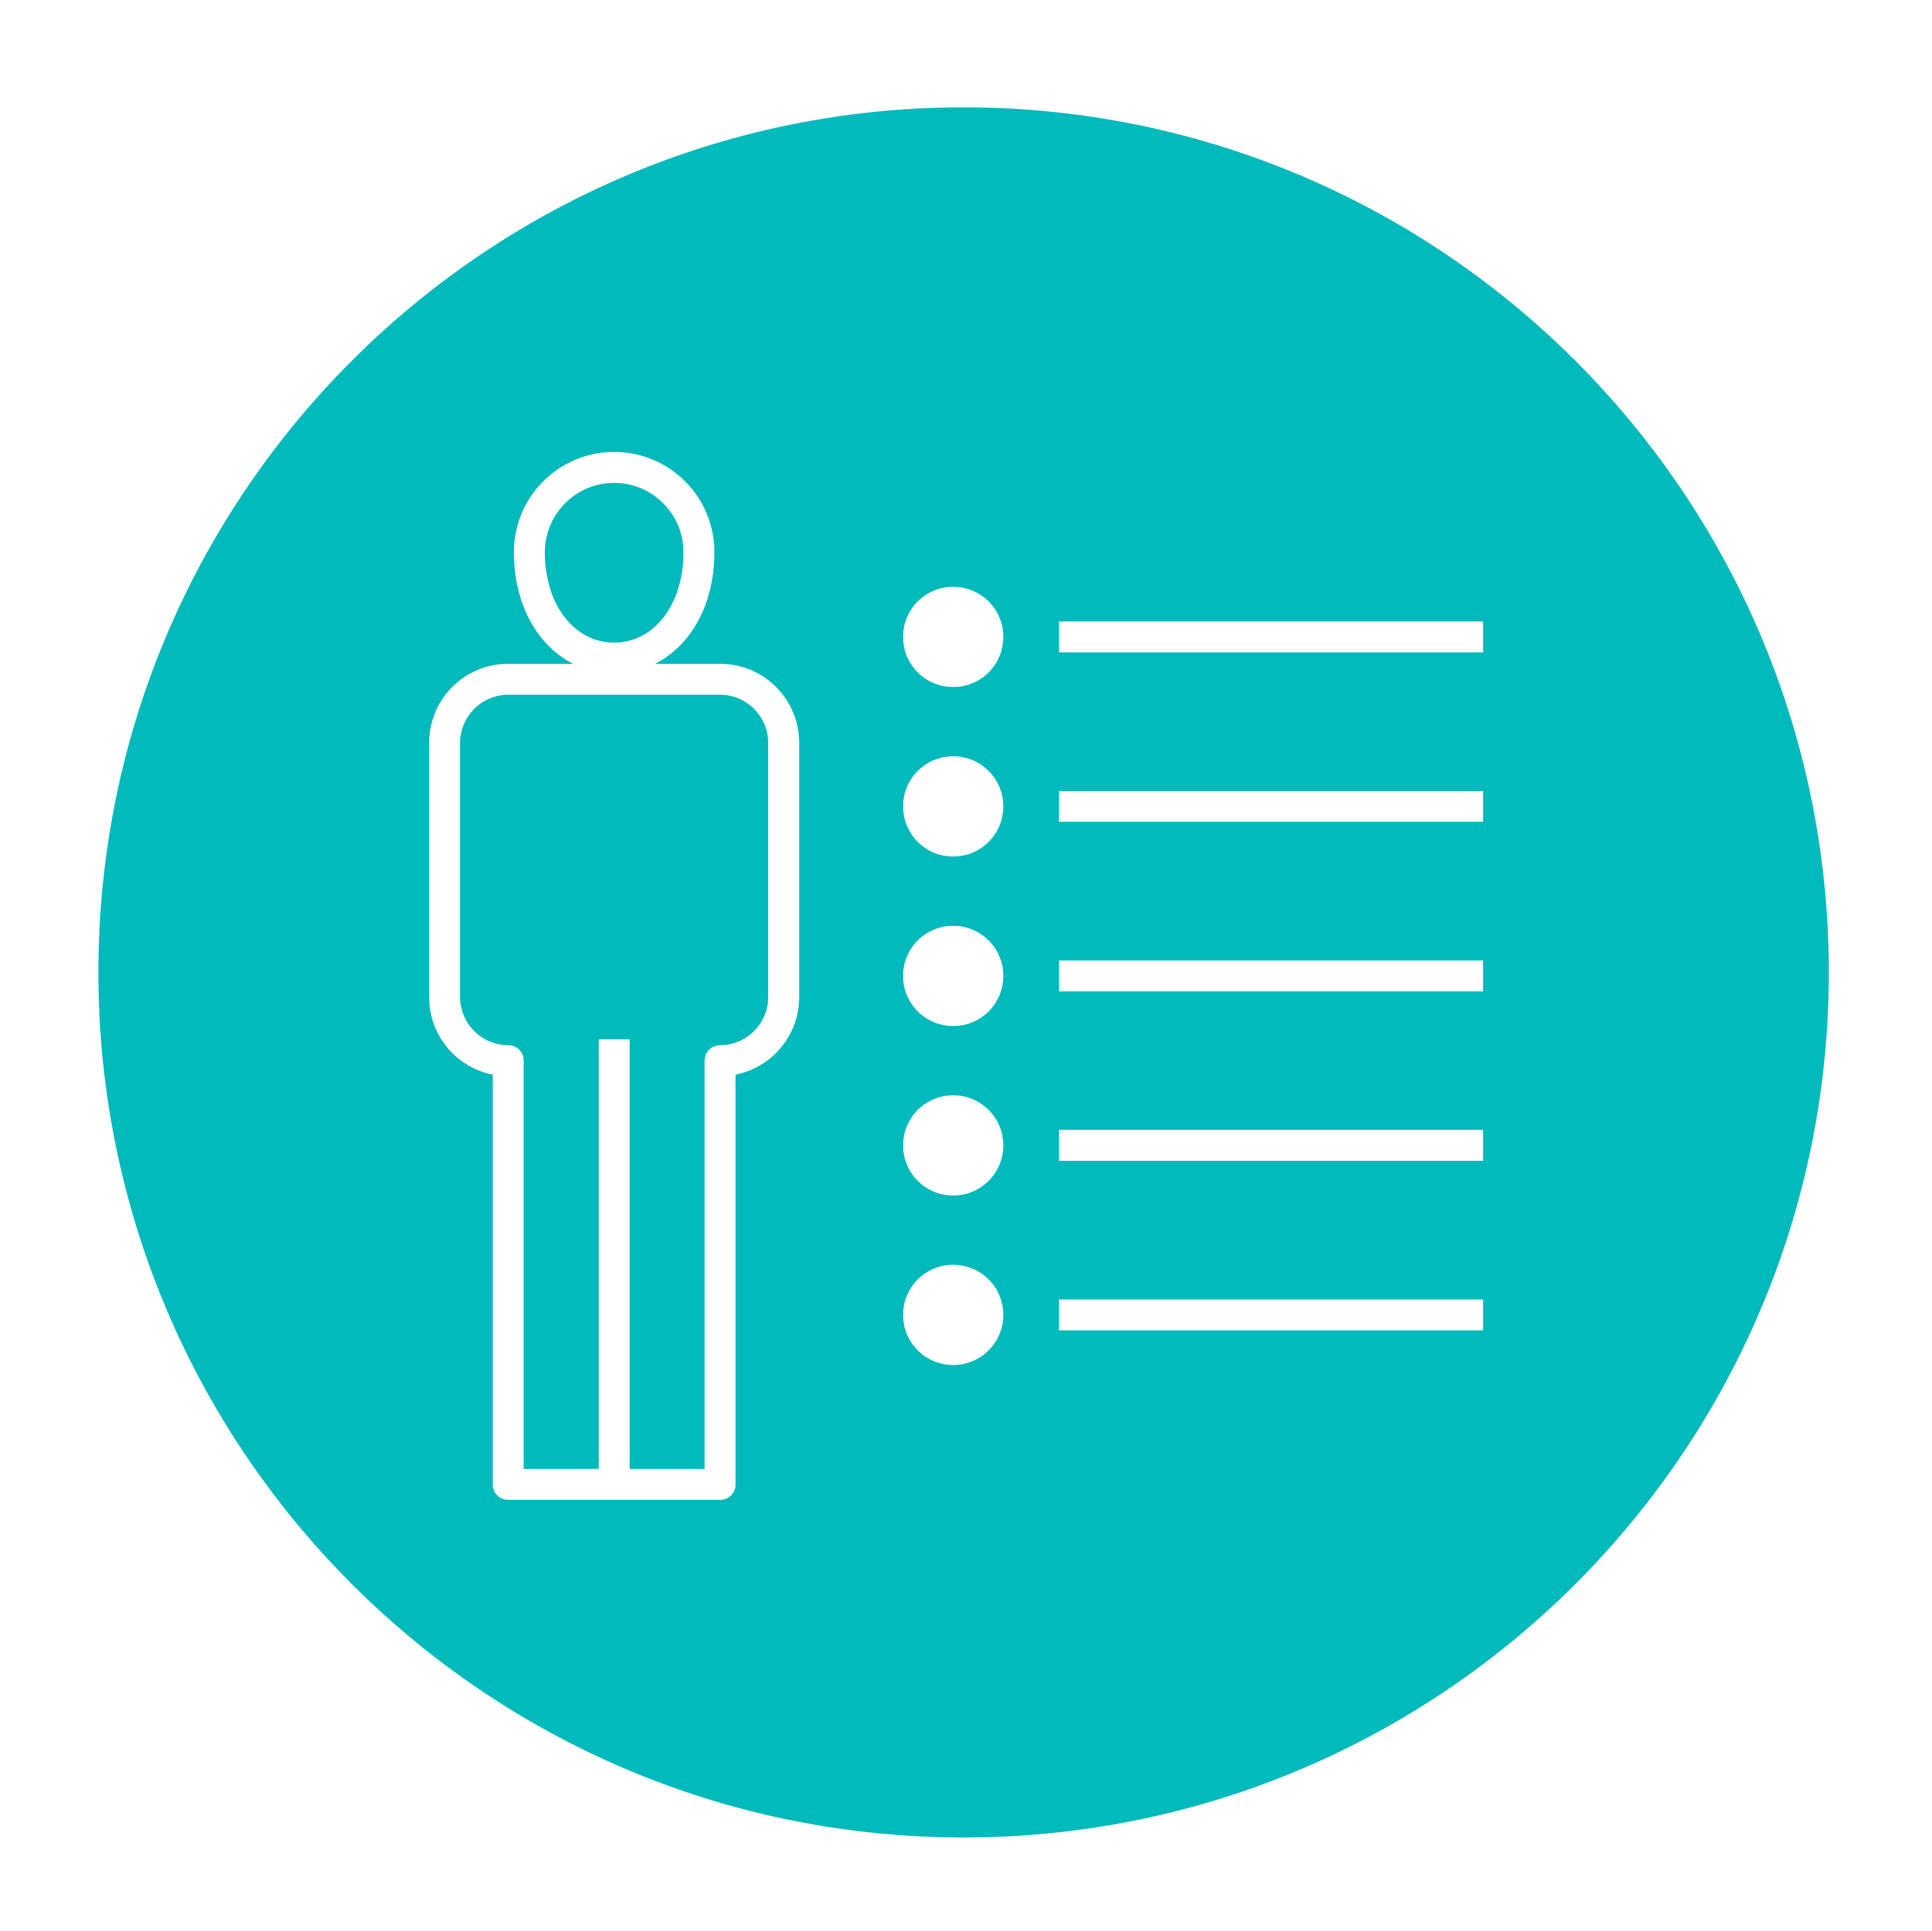 Icon of a person standing next to a bulleted list